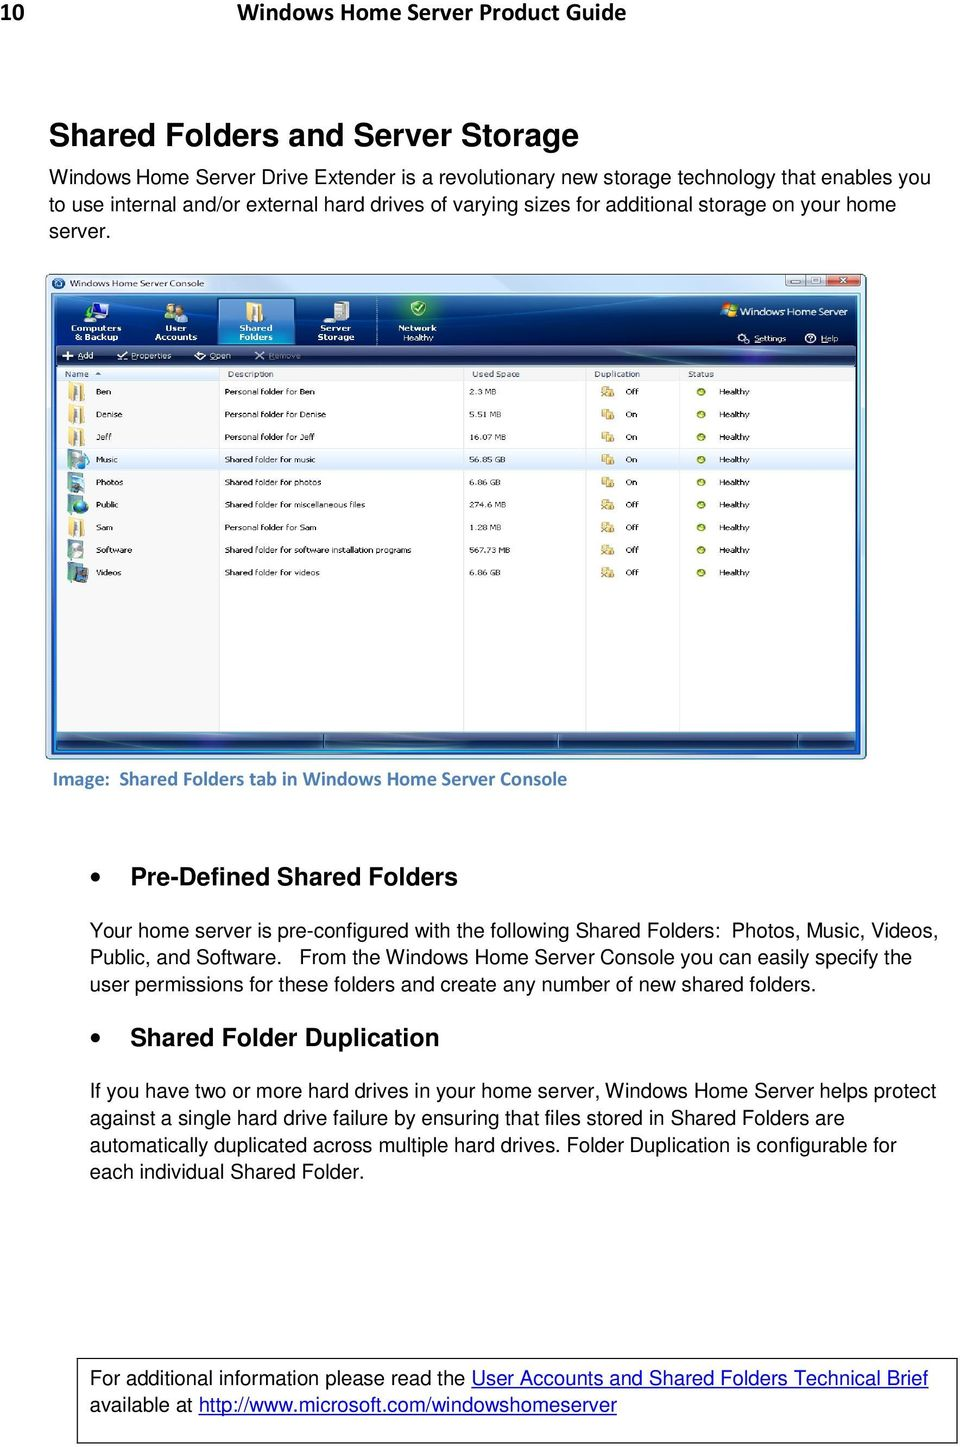 Image: Shared Folders tab in Windows Home Server Console Pre-Defined Shared Folders Your home server is pre-configured with the following Shared Folders: Photos, Music, Videos, Public, and Software.